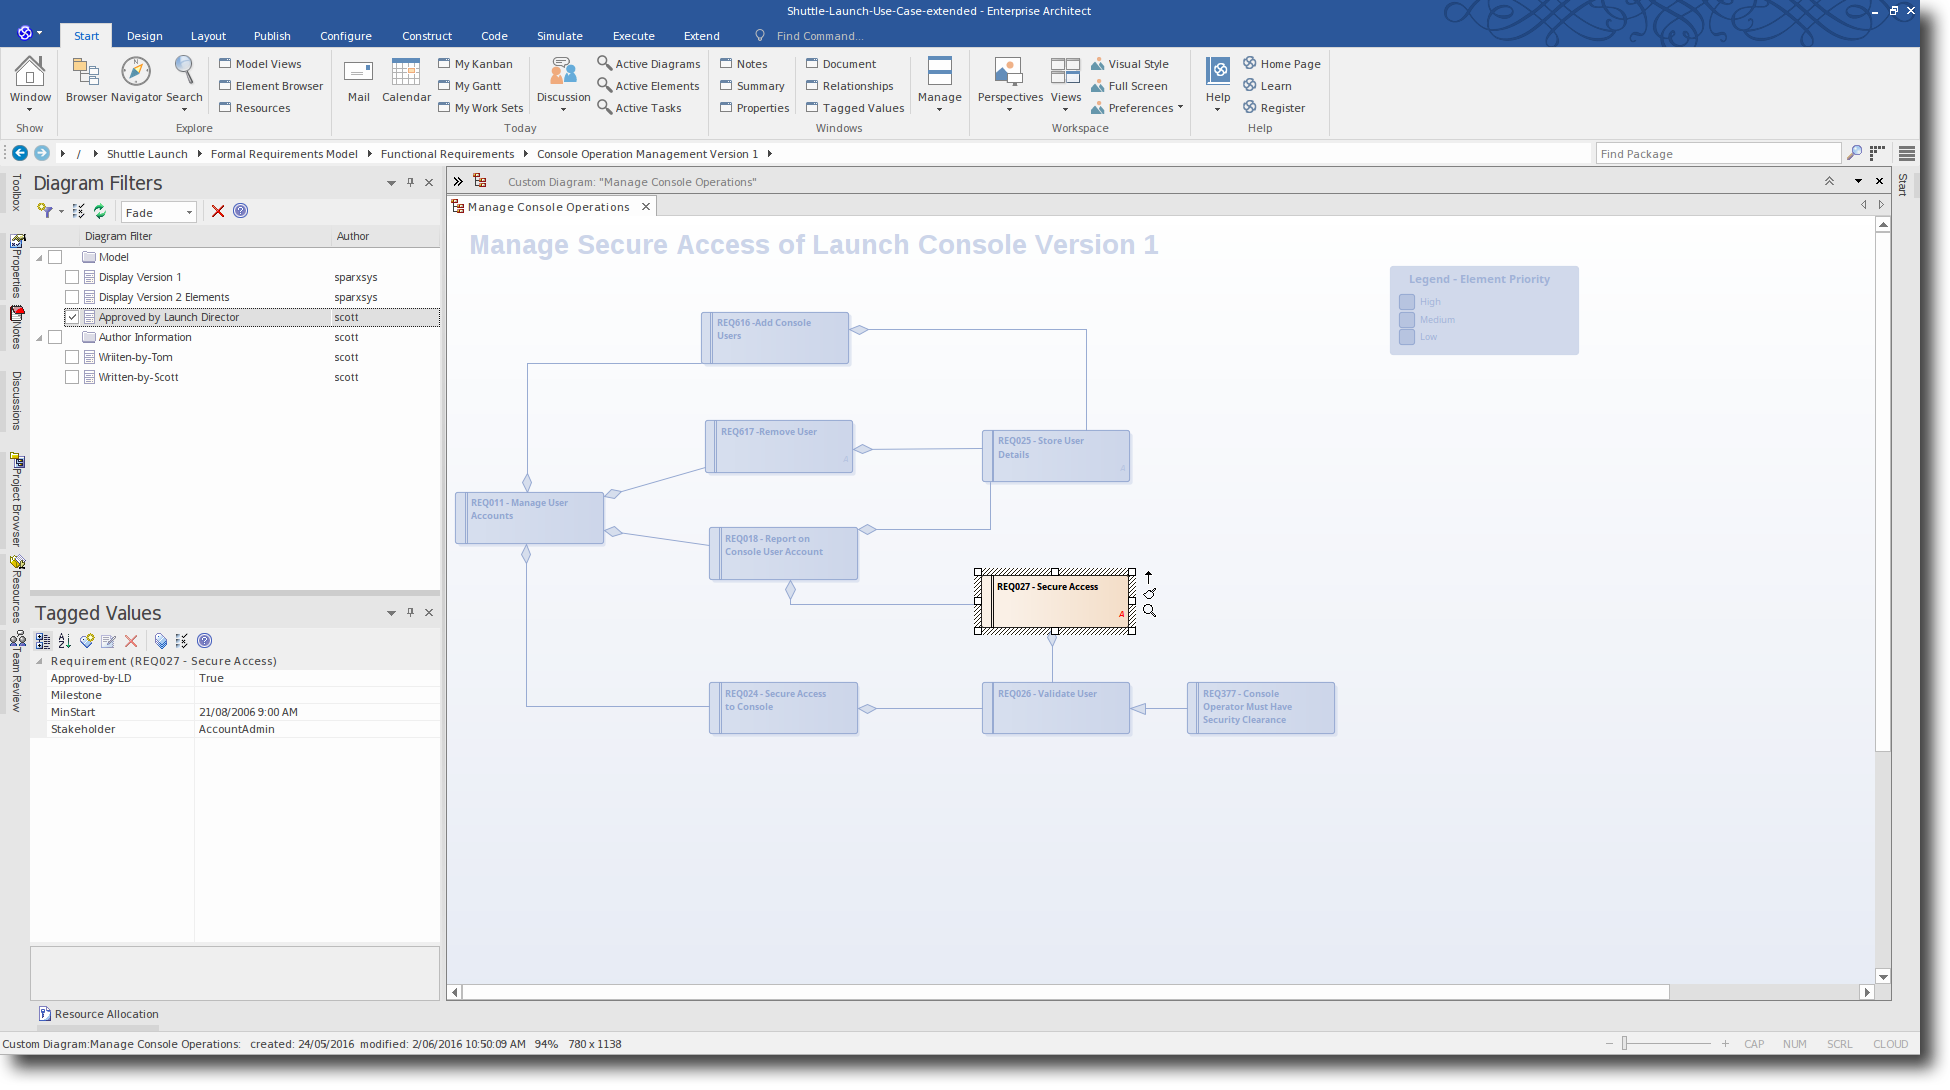 Enterprise Architect Version 13 Sparx Systems Application Life Cycle Uml Protocol State Machine Diagram Example Filtering Applying A Filter For Tagged Value